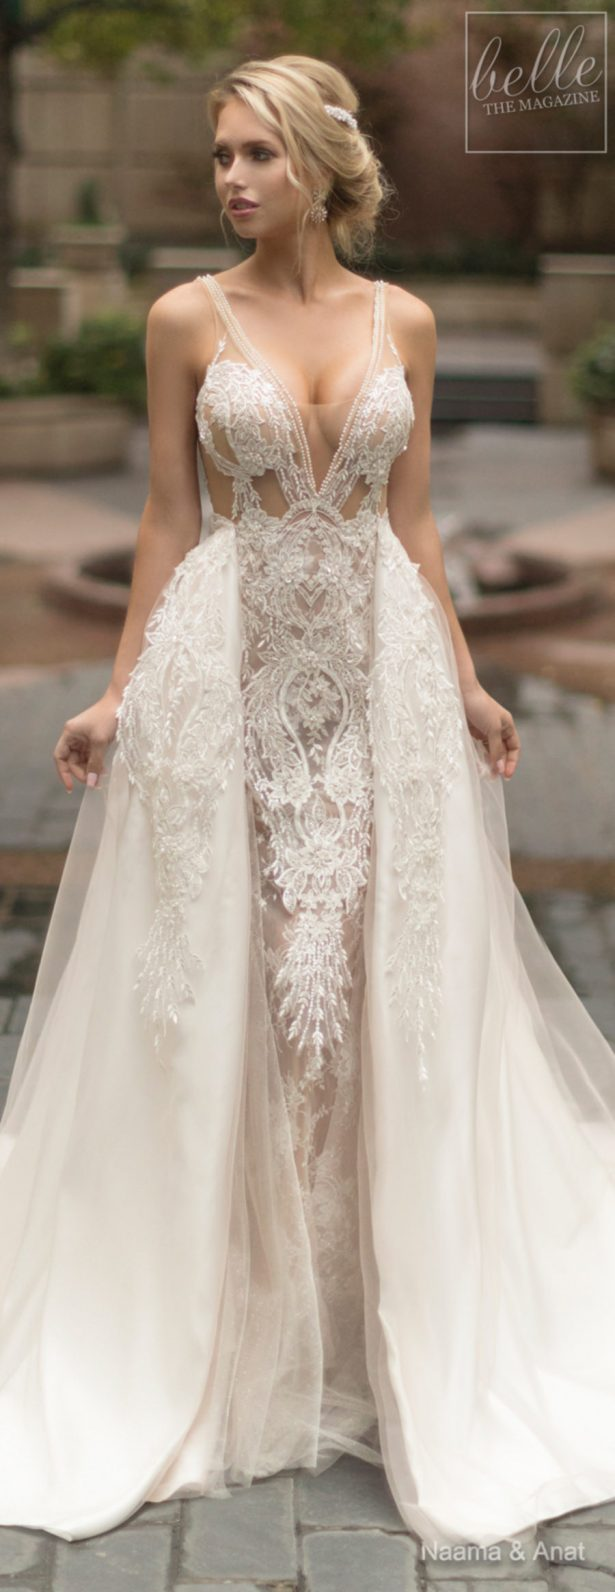 Naama and Anat Wedding Dress Collection 2019: Dancing Up ...